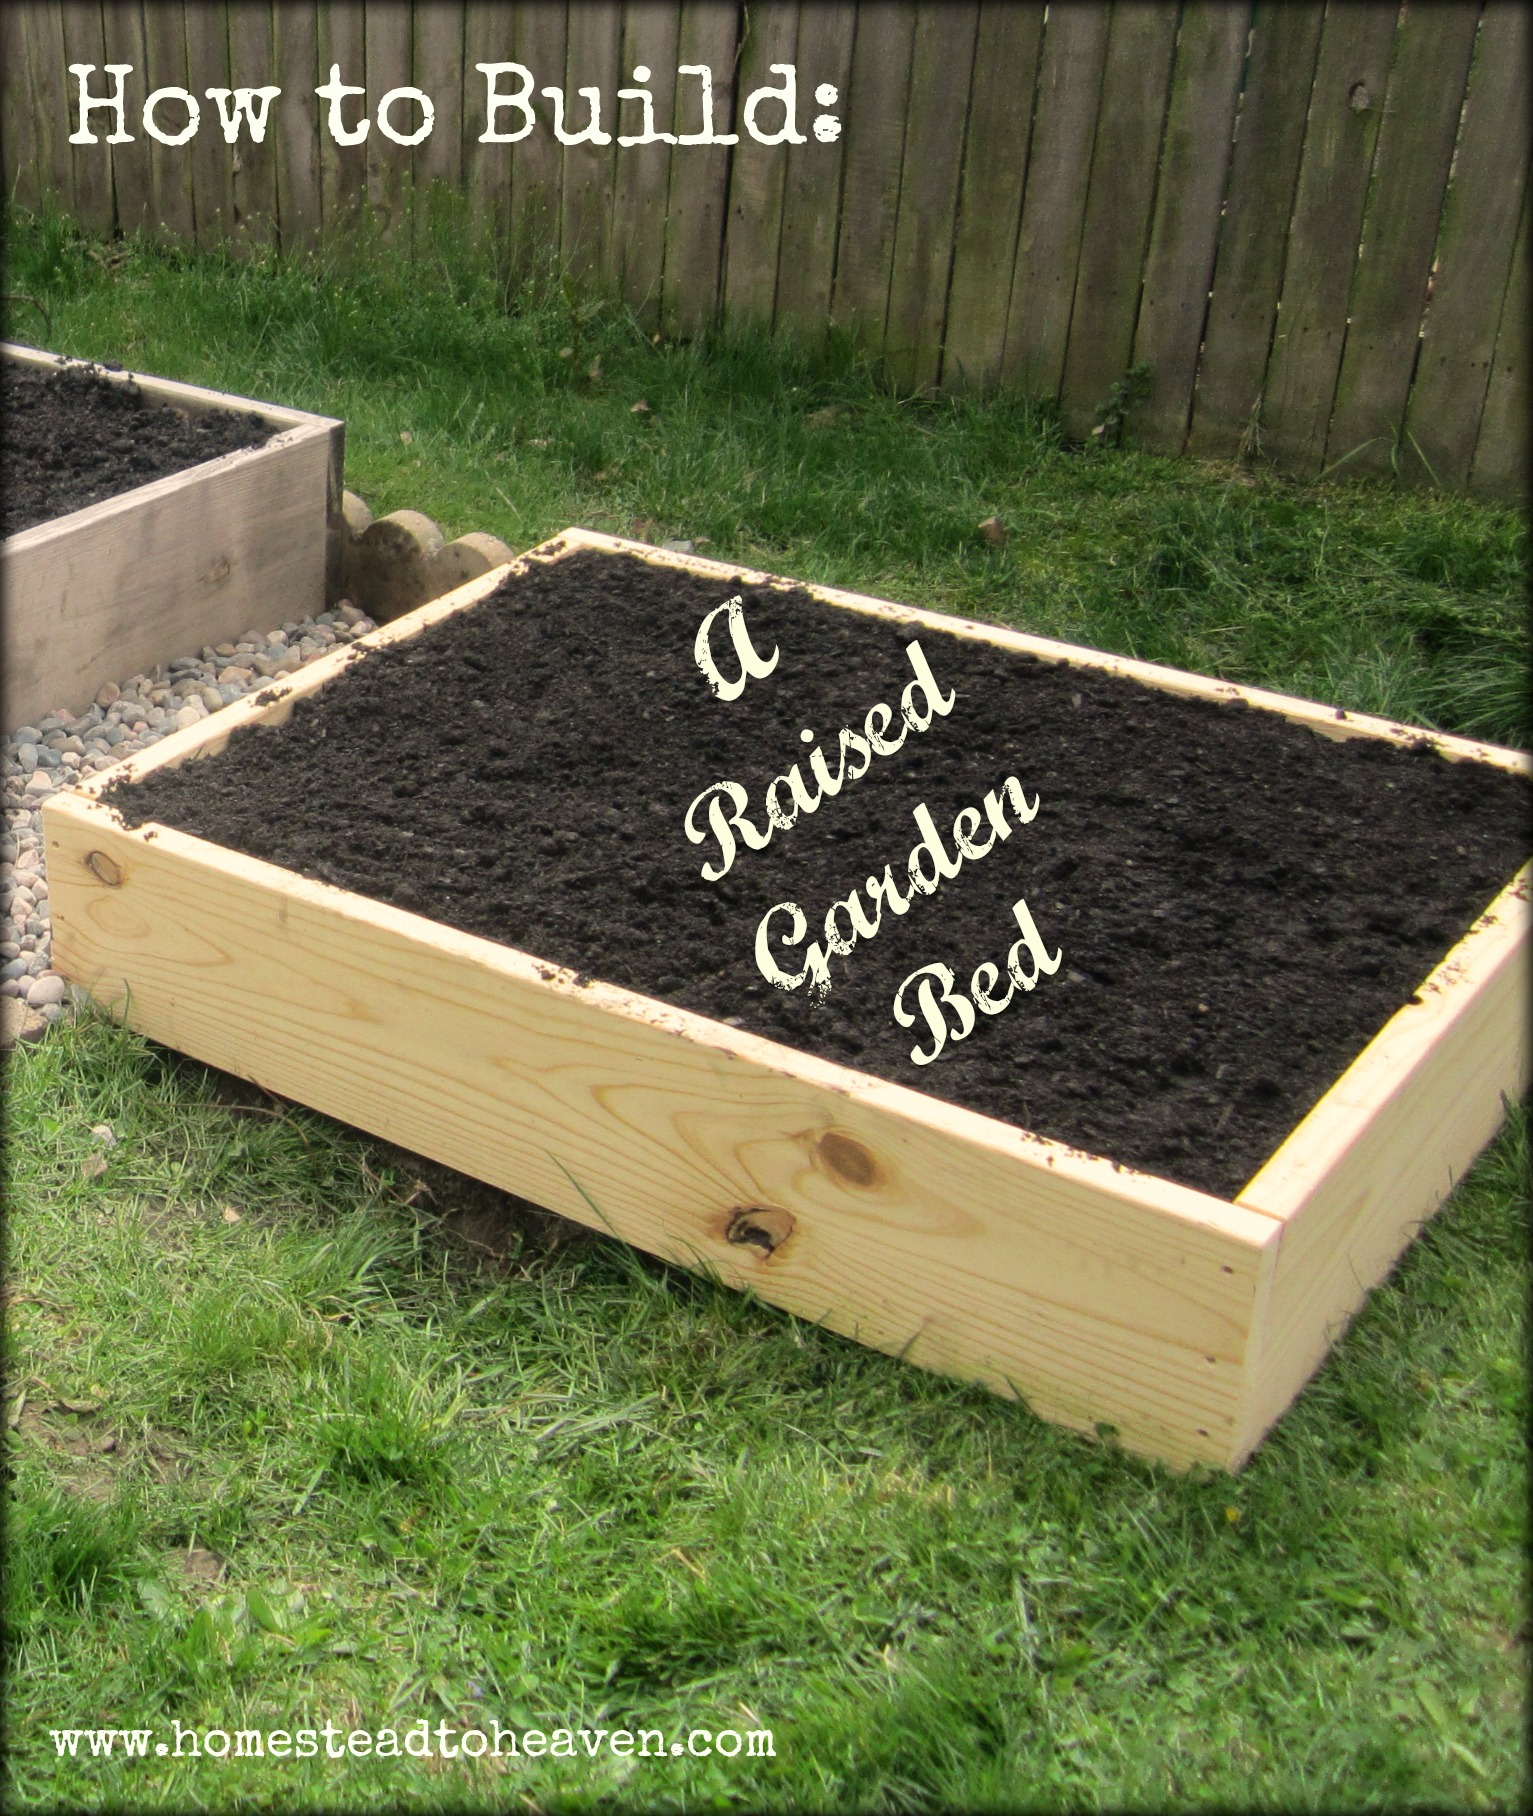 Garden Design Garden Design with Build A Raised Garden Bed